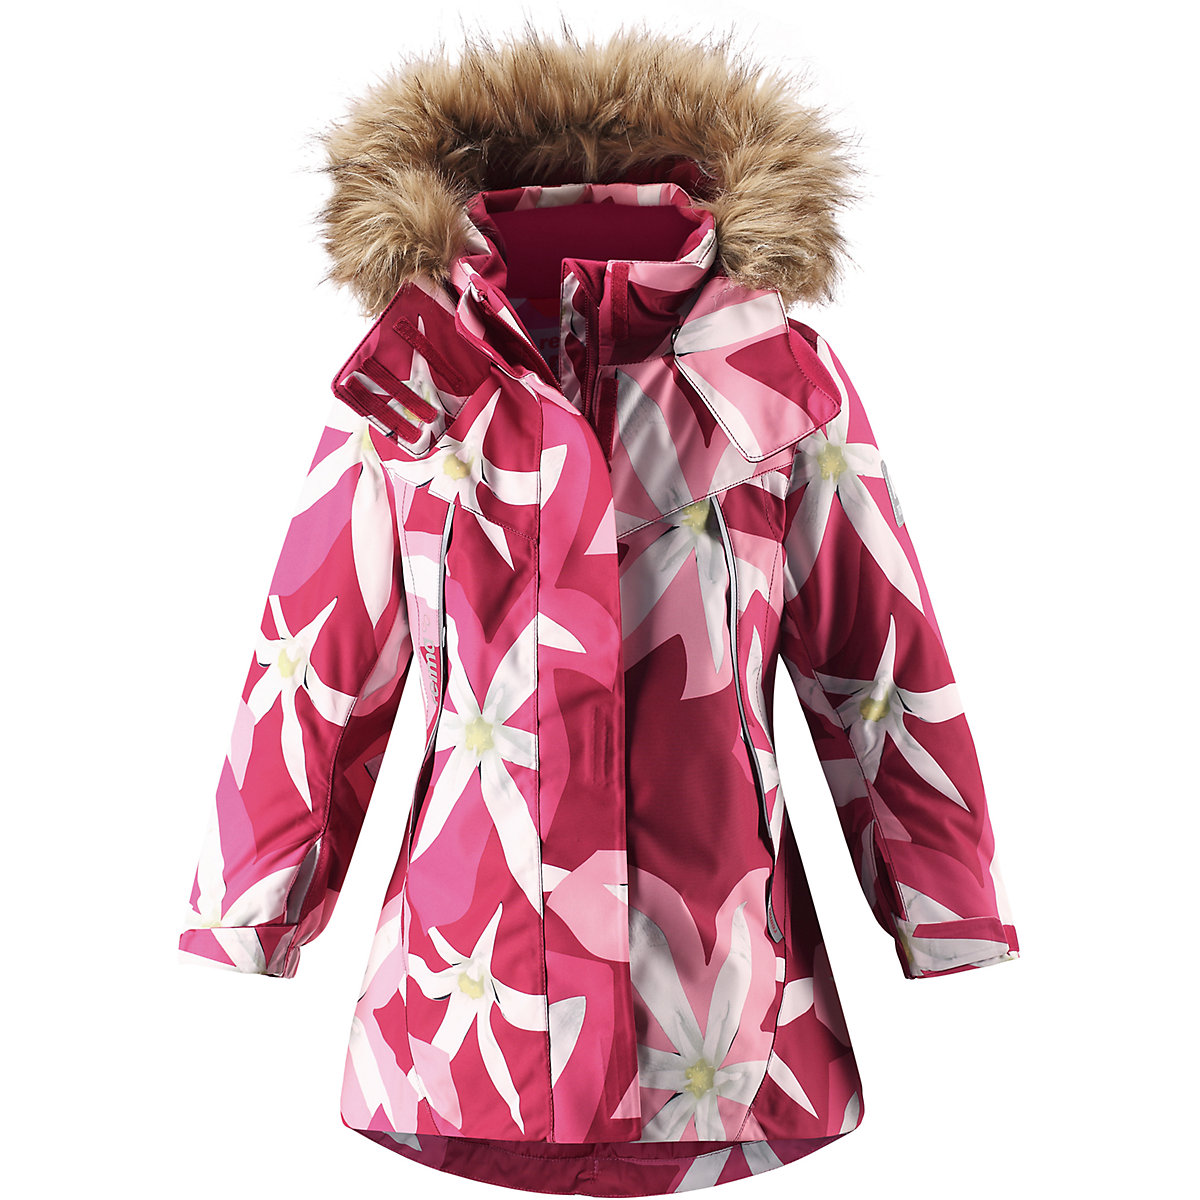 REIMA Jackets & Coats 8688910 for girls baby clothing winter warm boy girl jacket Polyester icebear 2018 fashion winter jacket men s brand clothing jacket high quality thick warm men winter coat down jacket 17md811